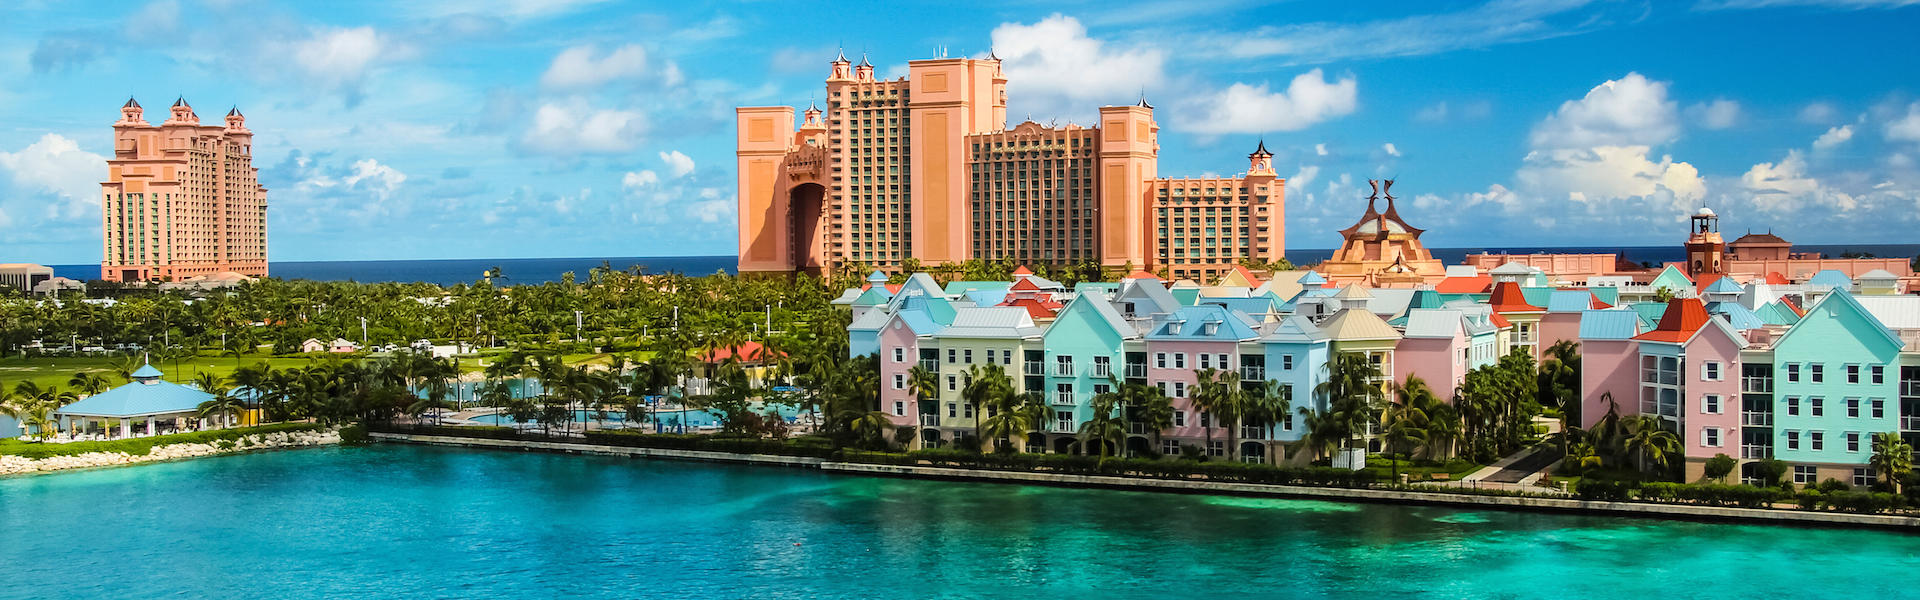 Capital_of_bahamas_nassau